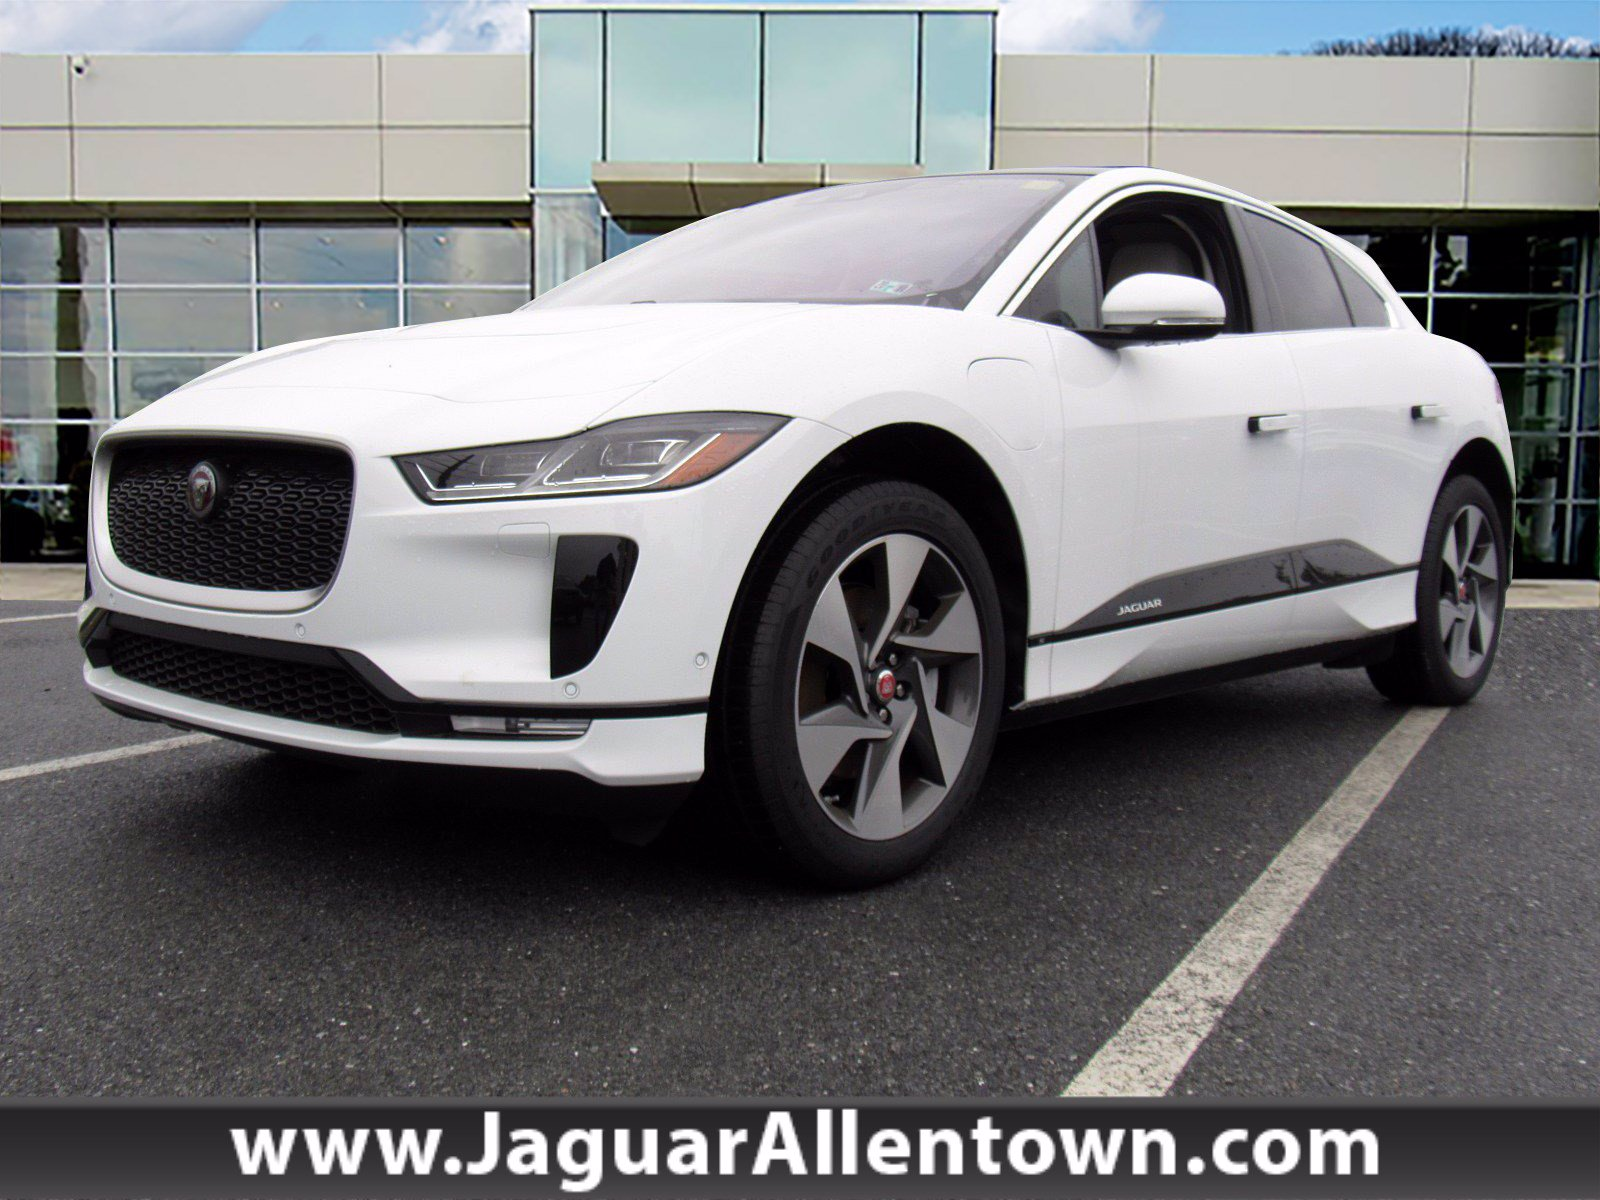 New 2020 Jaguar I-PACE S With Navigation & AWD